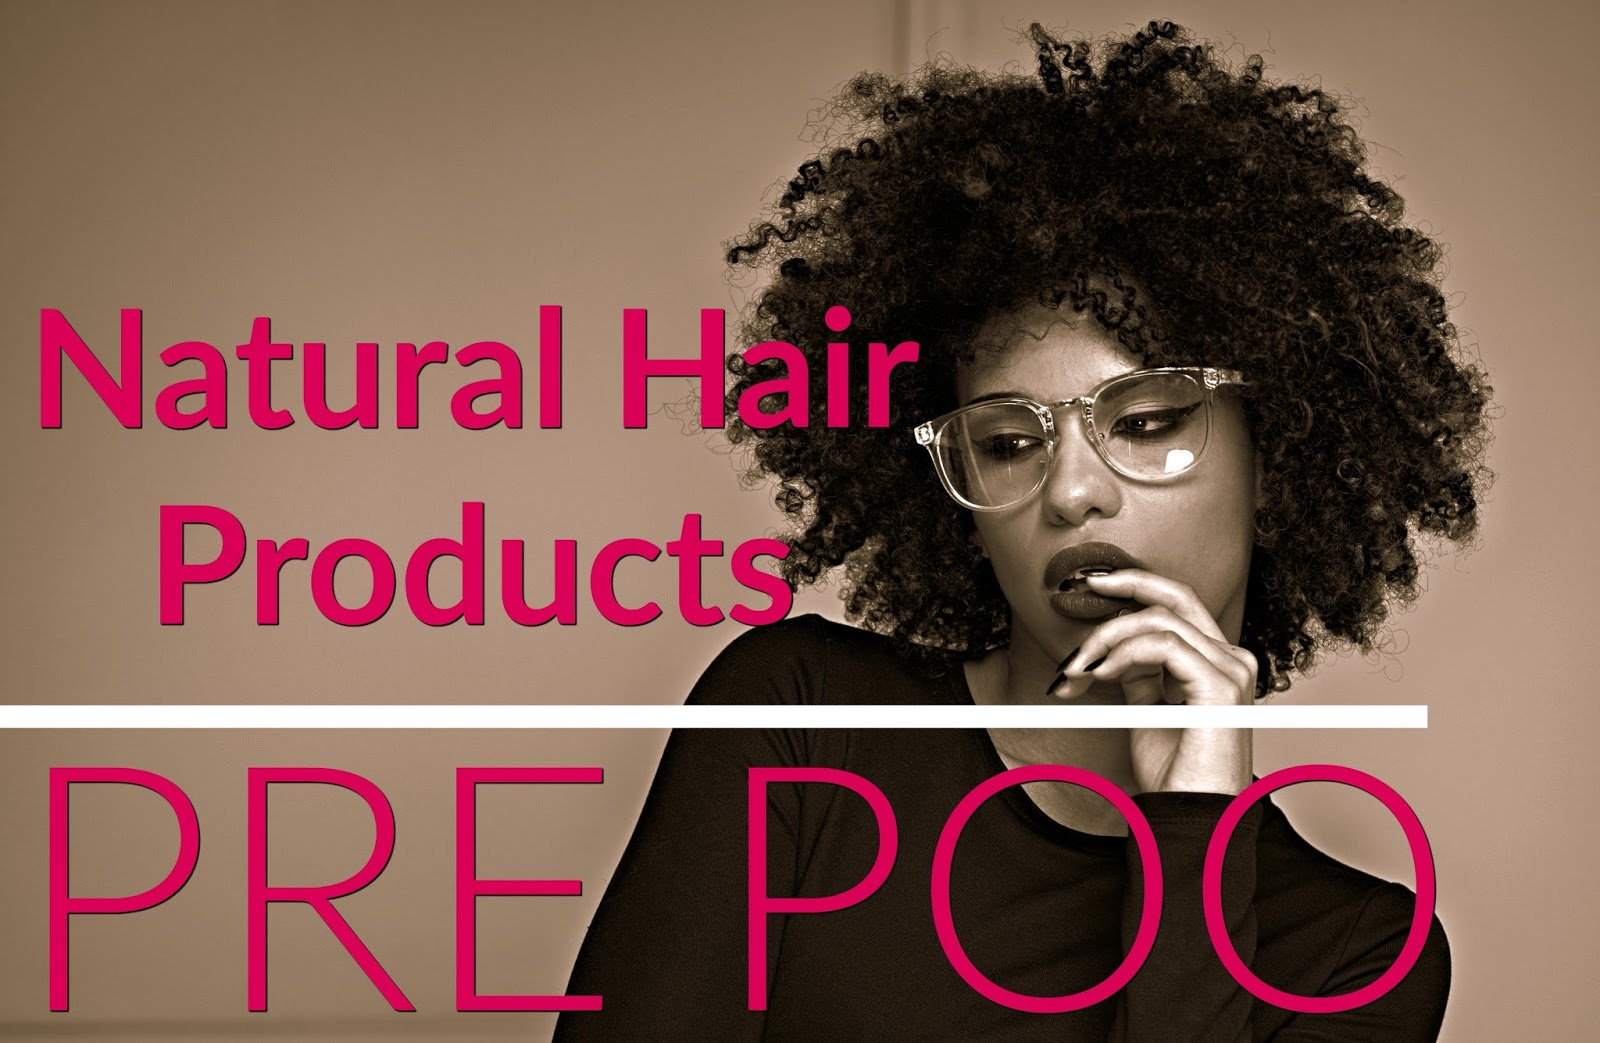 Natural Hair Products – The Pre Poo